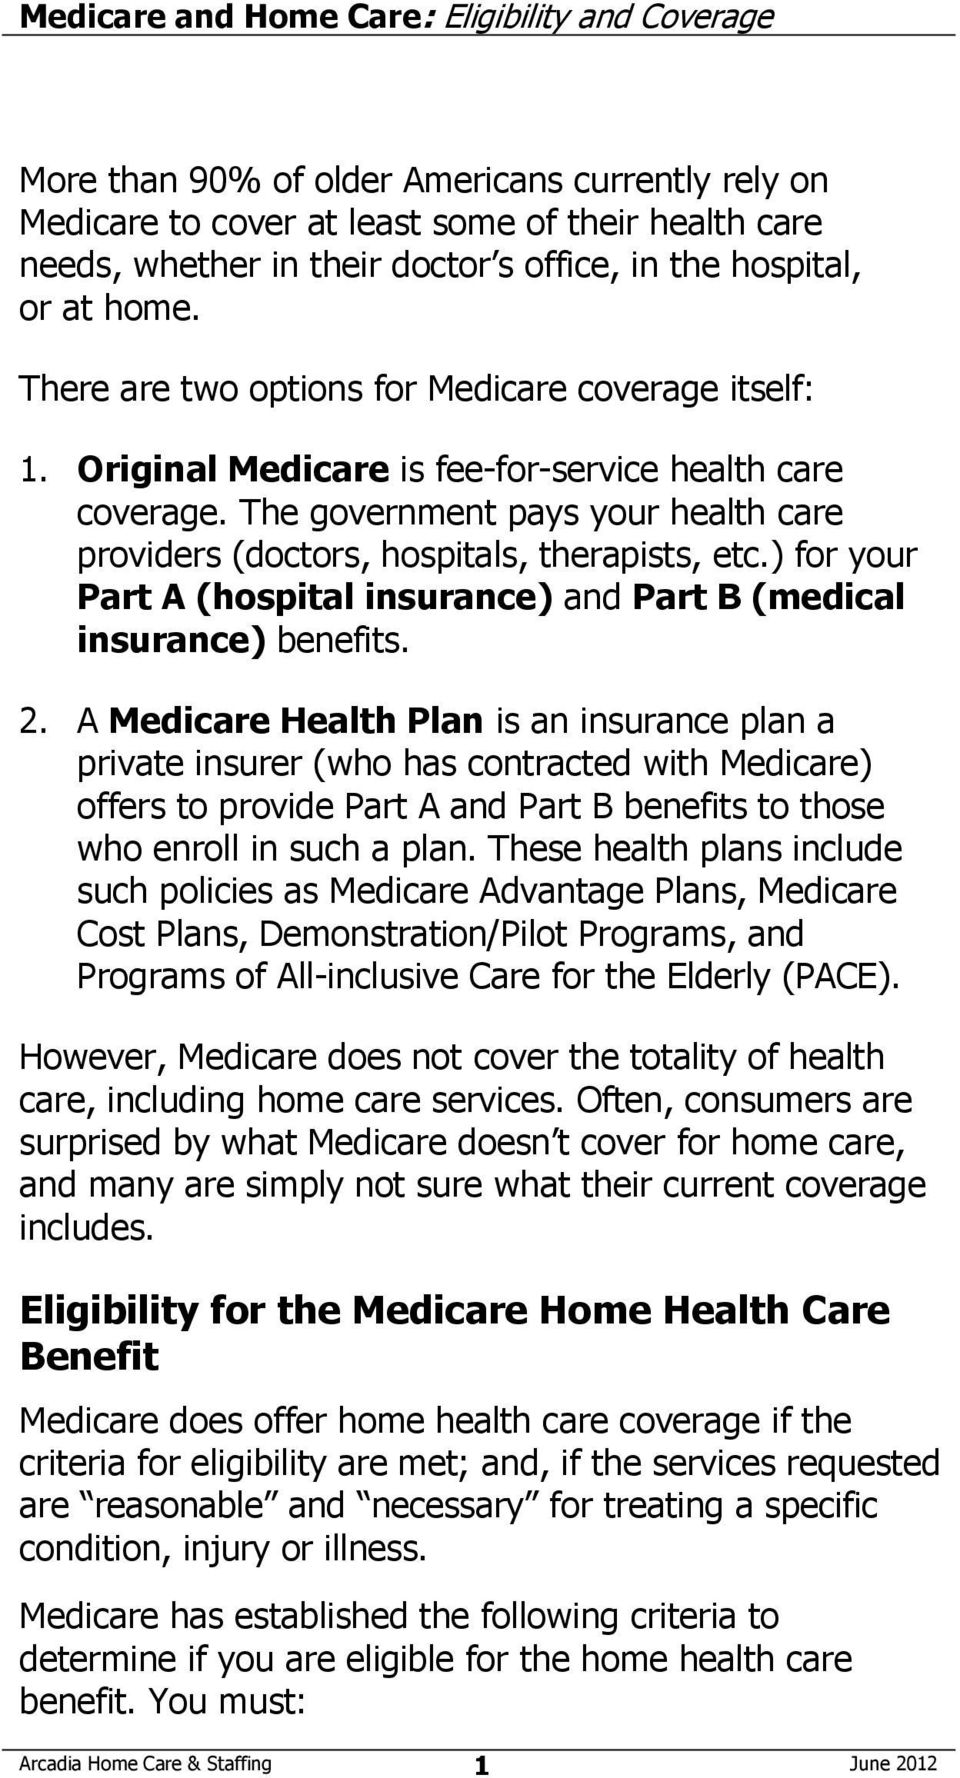 Medicare and Home Care: Eligibility and Coverage - PDF